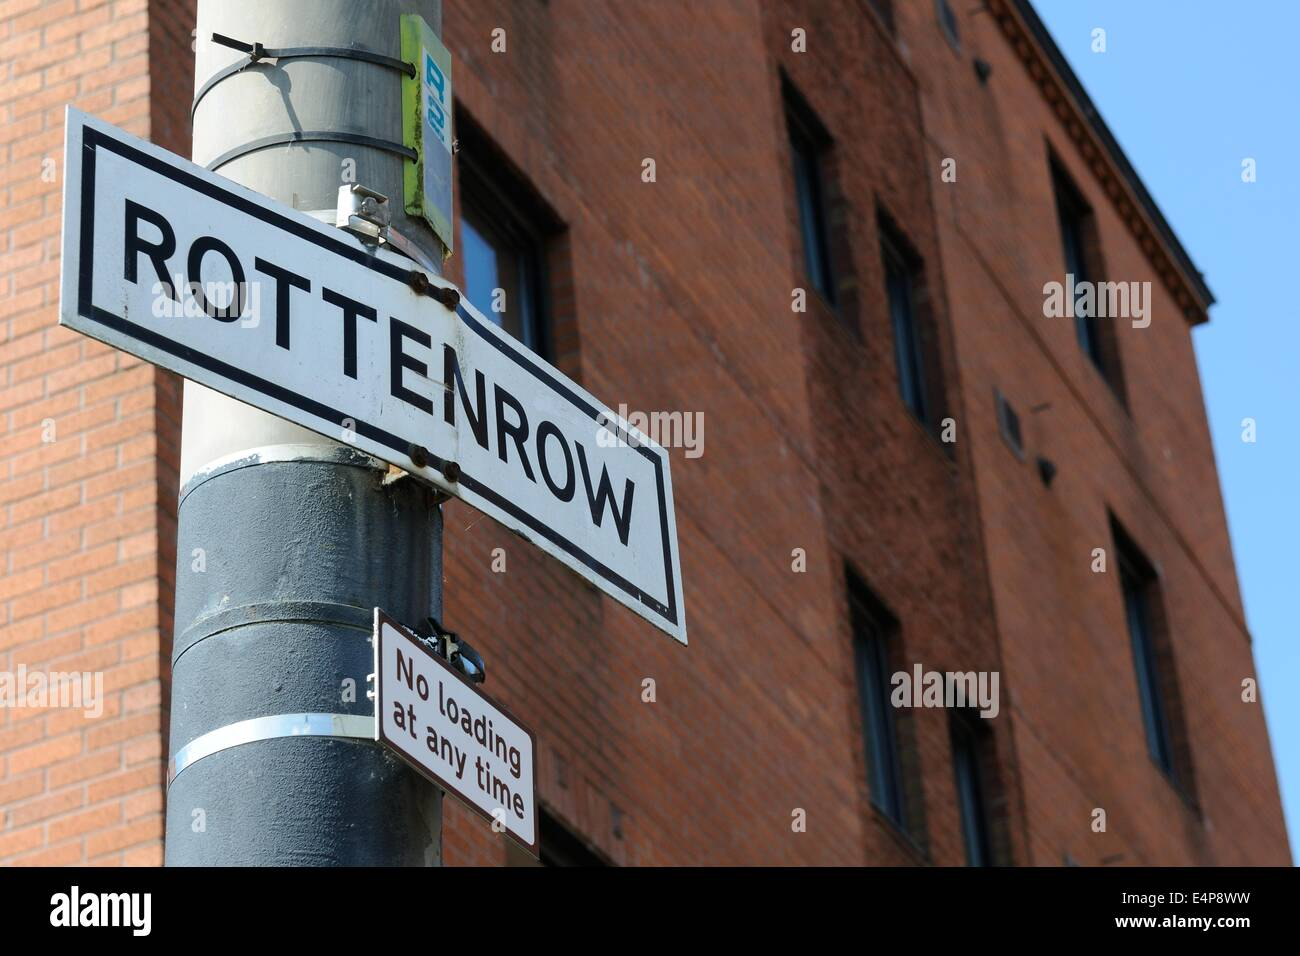 Signpost in Glasgow, Scotland showing Rottenrow the site of Glasgow's now closed old maternity hospital. Stock Photo